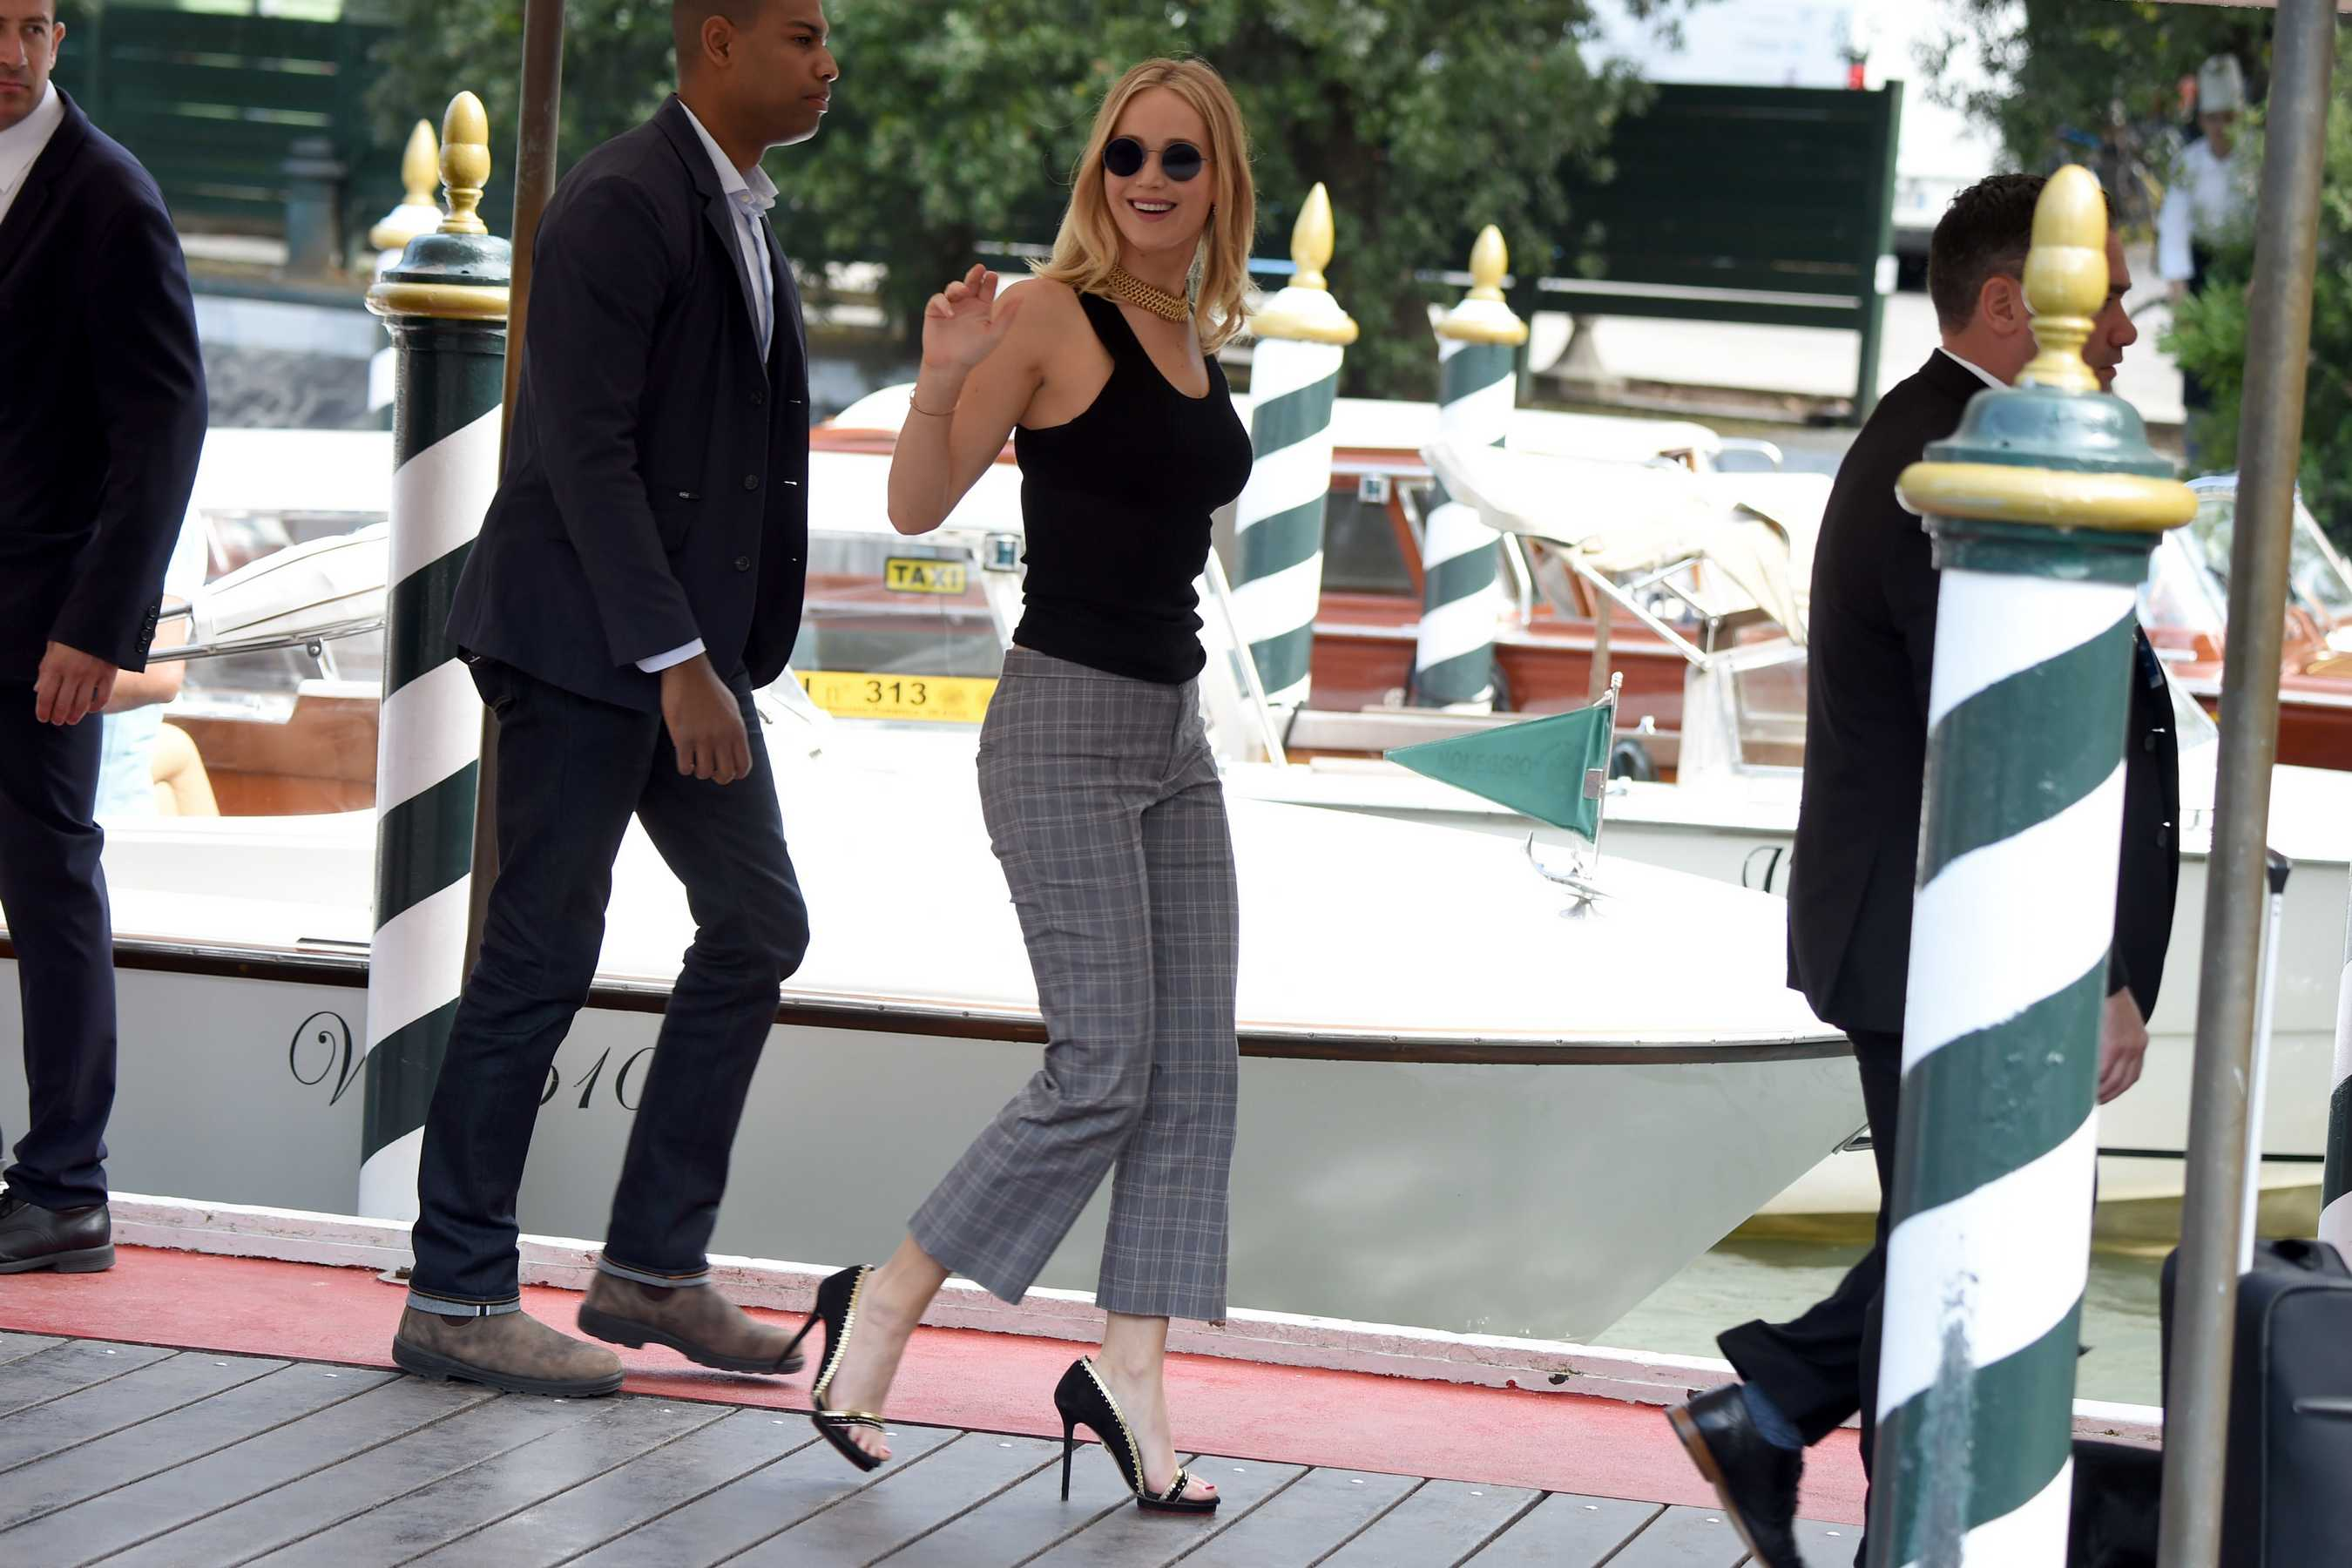 http://jenniferlawrencedaily.com/gallery/albums/userpics/10001/Jennifer_Lawrence_-_Arrives_at_Excelsior_Hotel_during_the_74th_Venice_Film_Festival_in_Italy_on_September_5-02.jpg